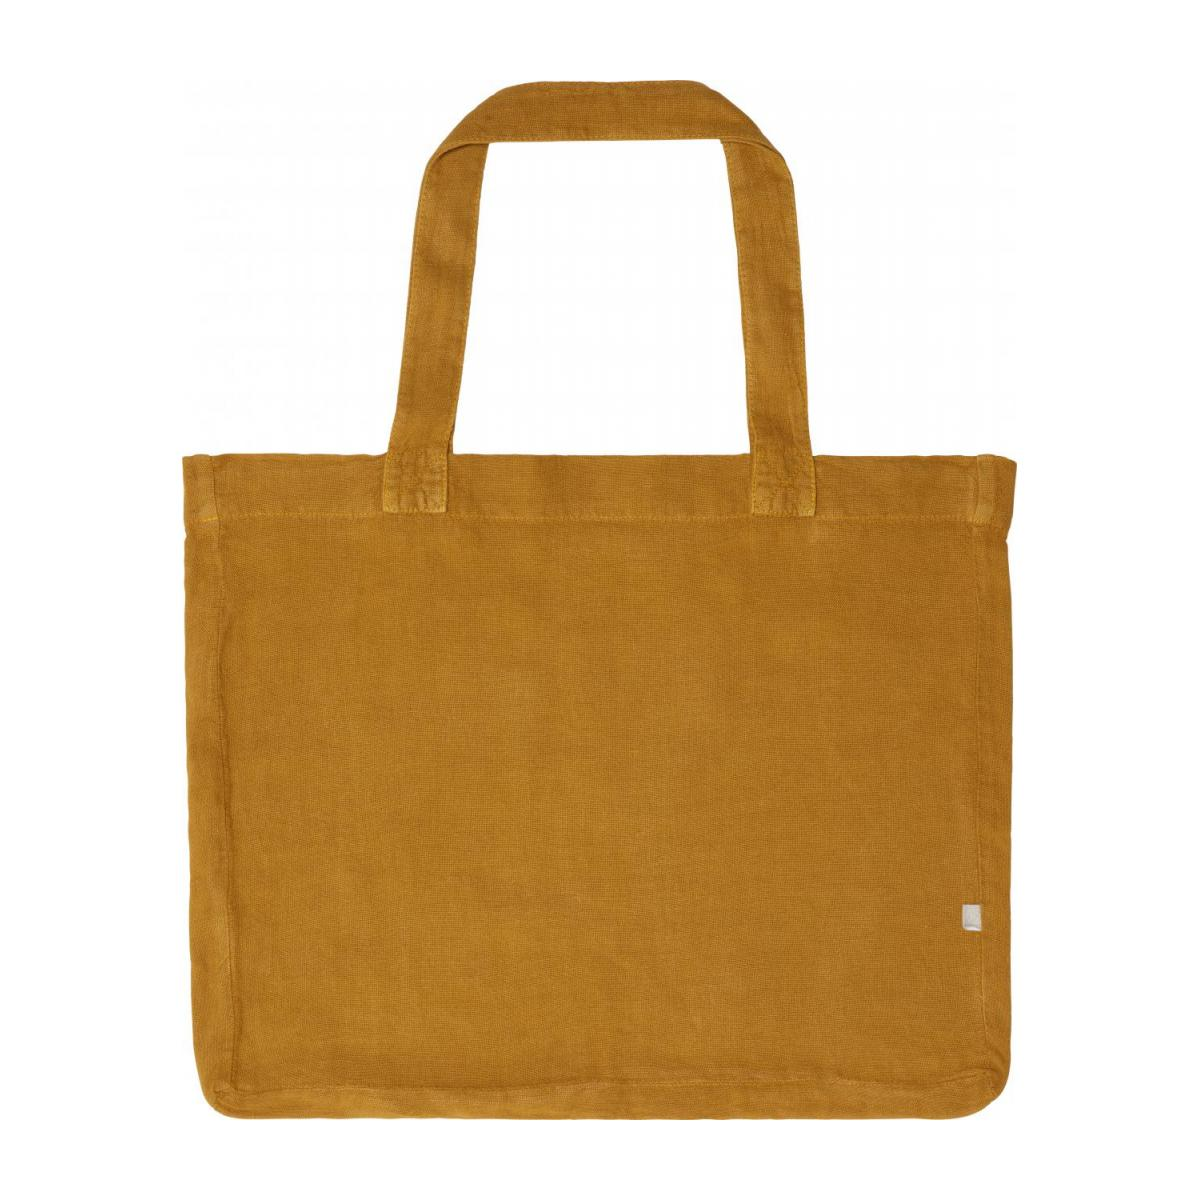 Shopping bag grande de lino mostaza